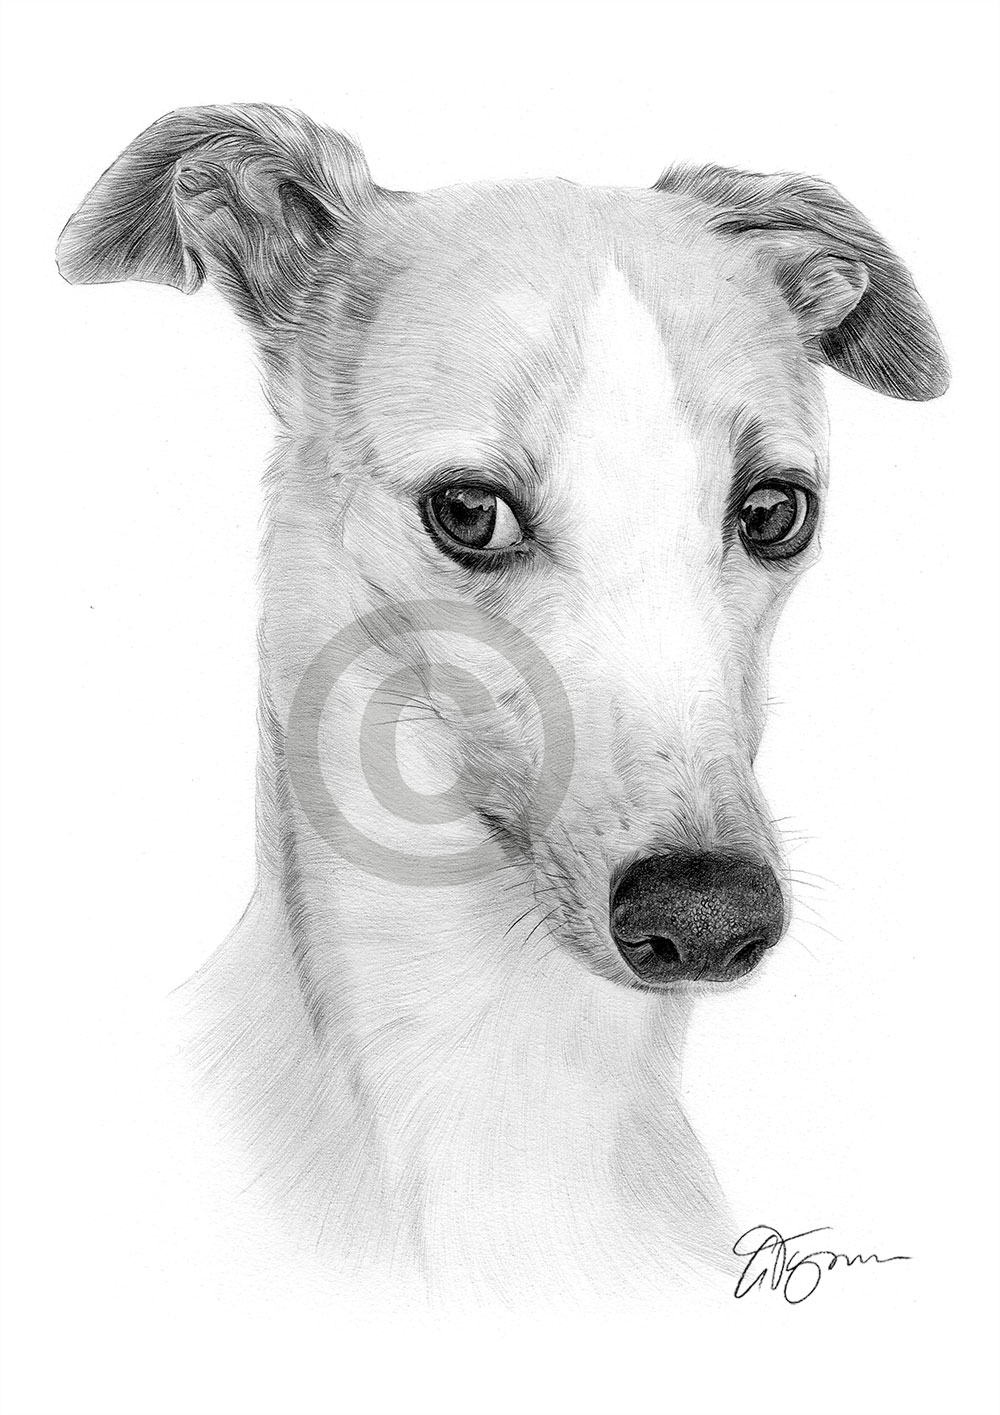 Details about whippet dog pencil drawing art print a4 a3 signed artwork by uk artist